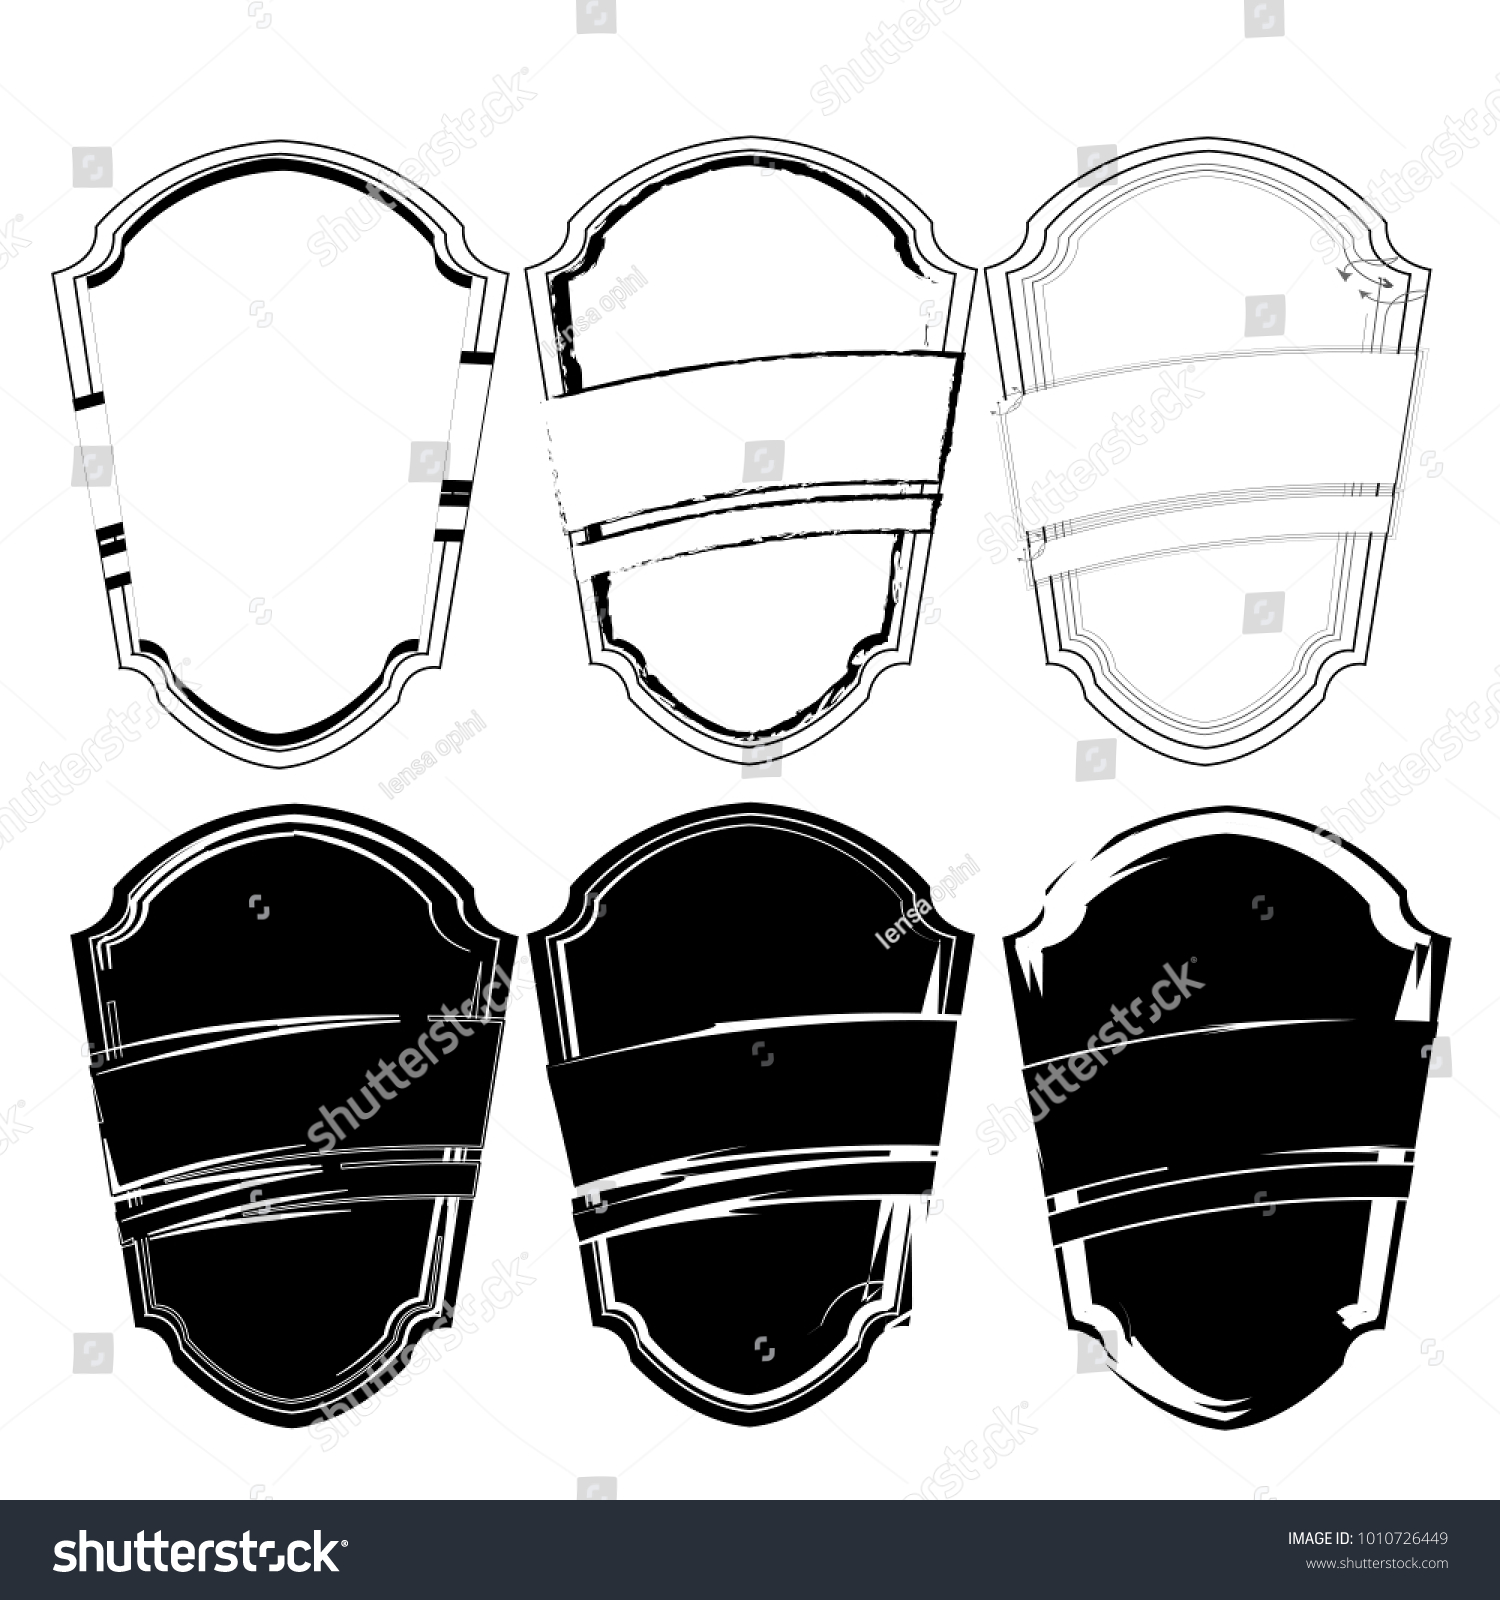 Collection Of Blank Silhouette Black Outline Template Sticker Label